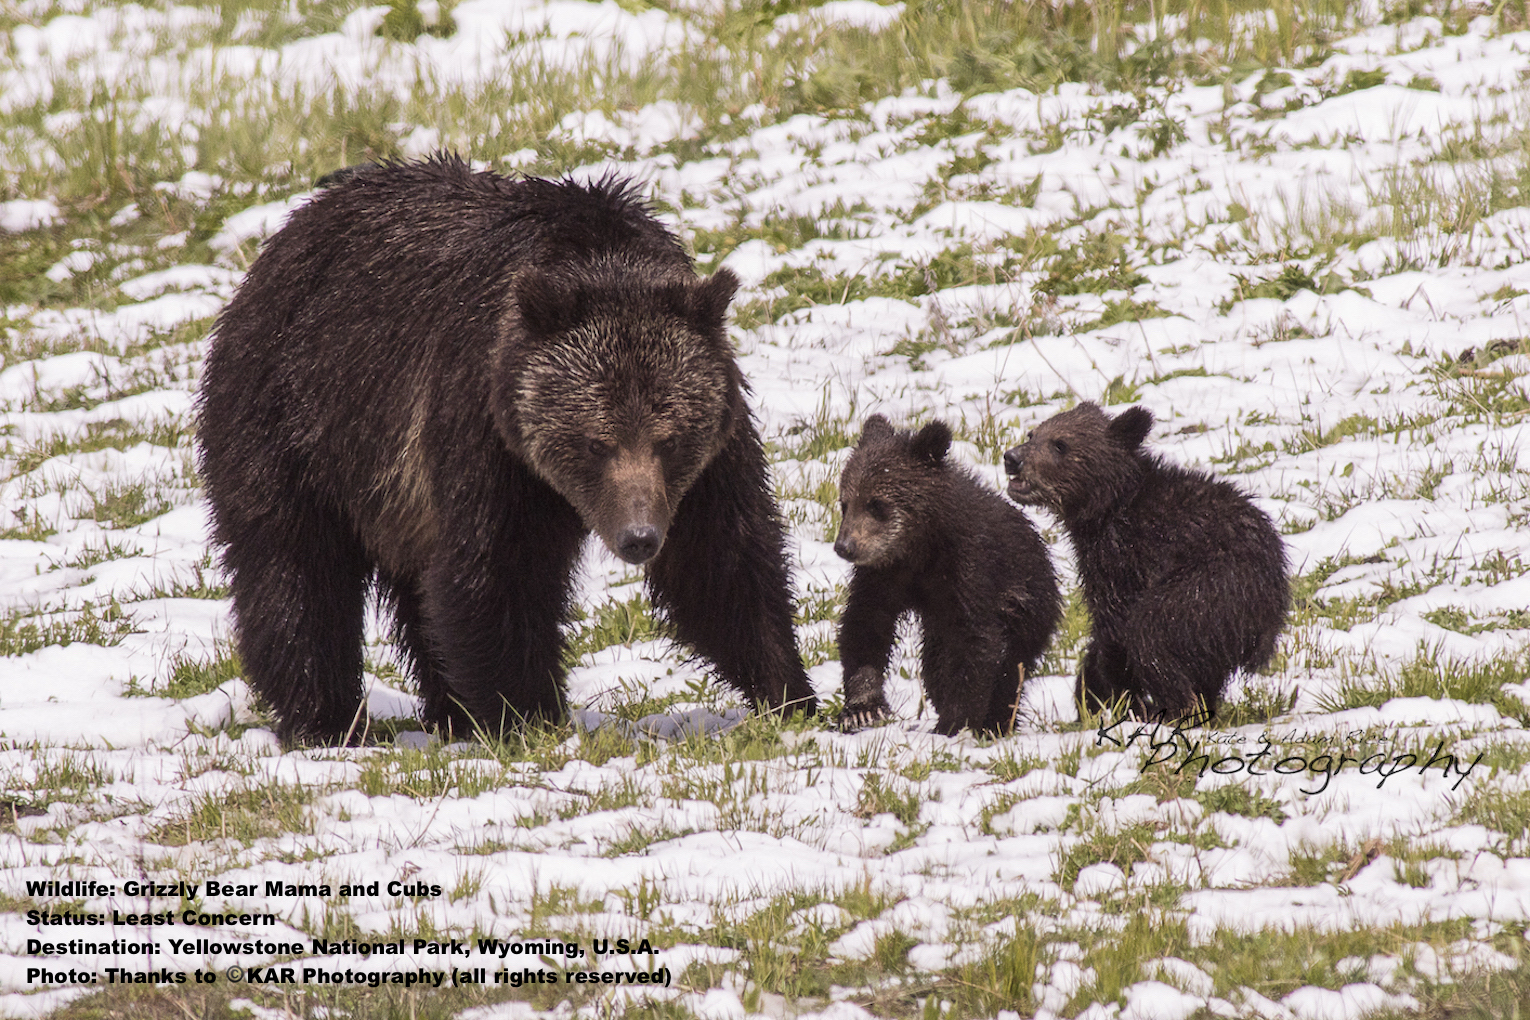 Mama bear and her grizzly cubs in Yellowstone National Park, Wyoming. Image: Thanks to Kar Photography.